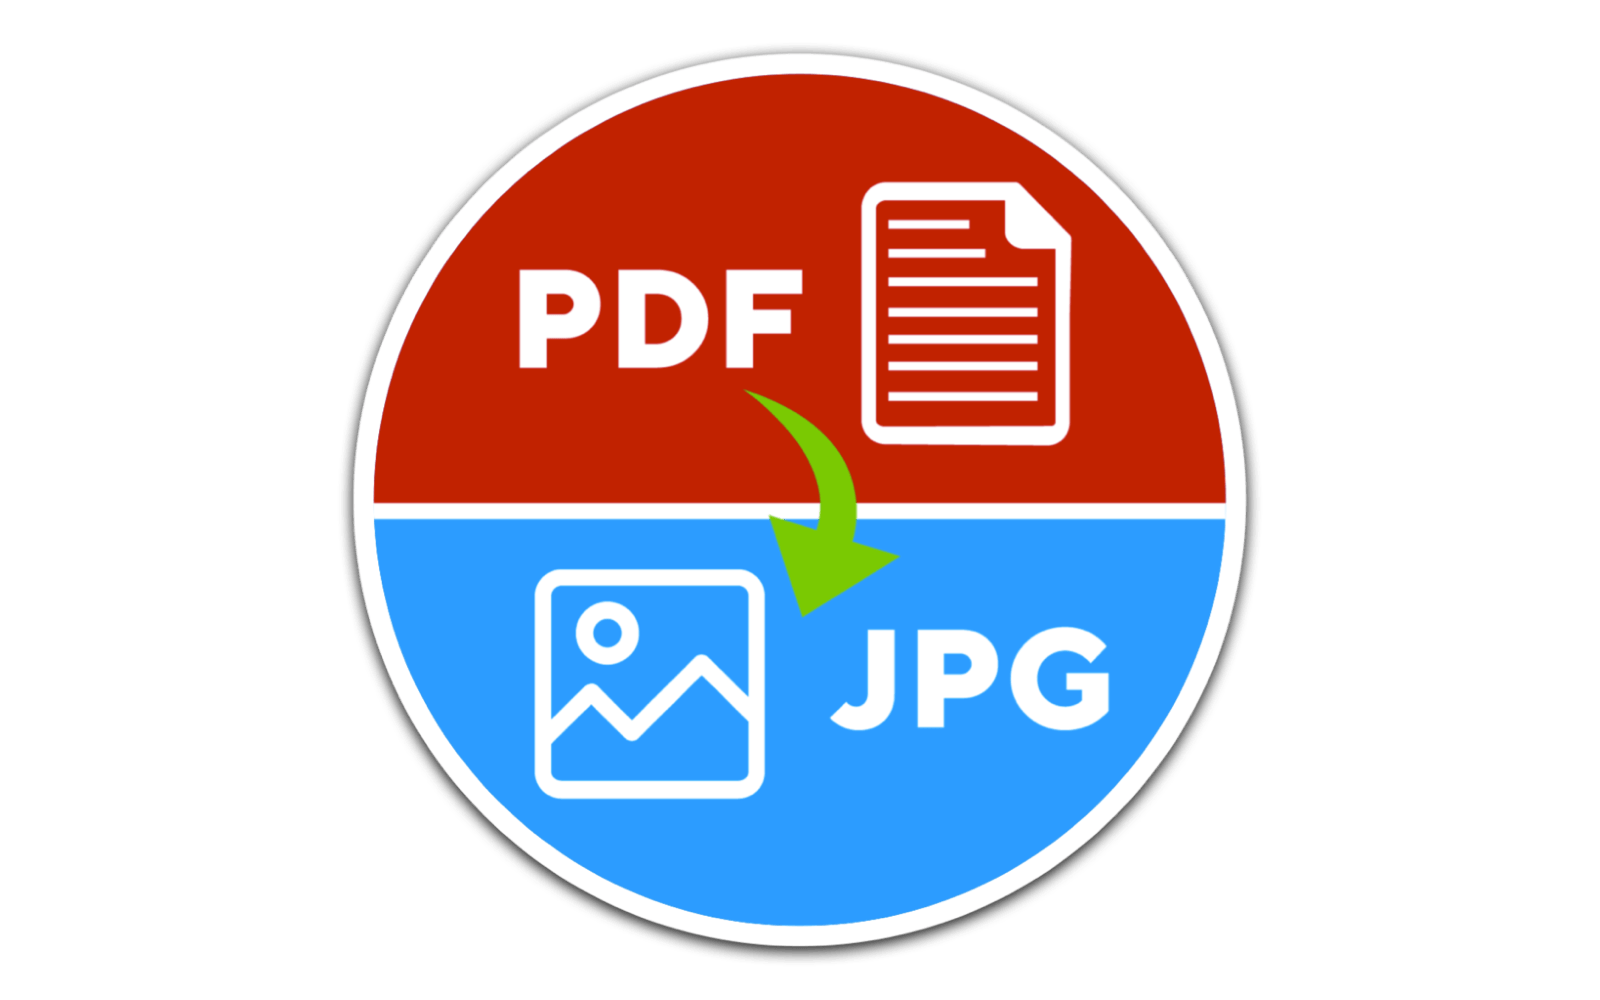 How to Convert PDF Files to JPG, JPEG or PNG on Mac OS X.